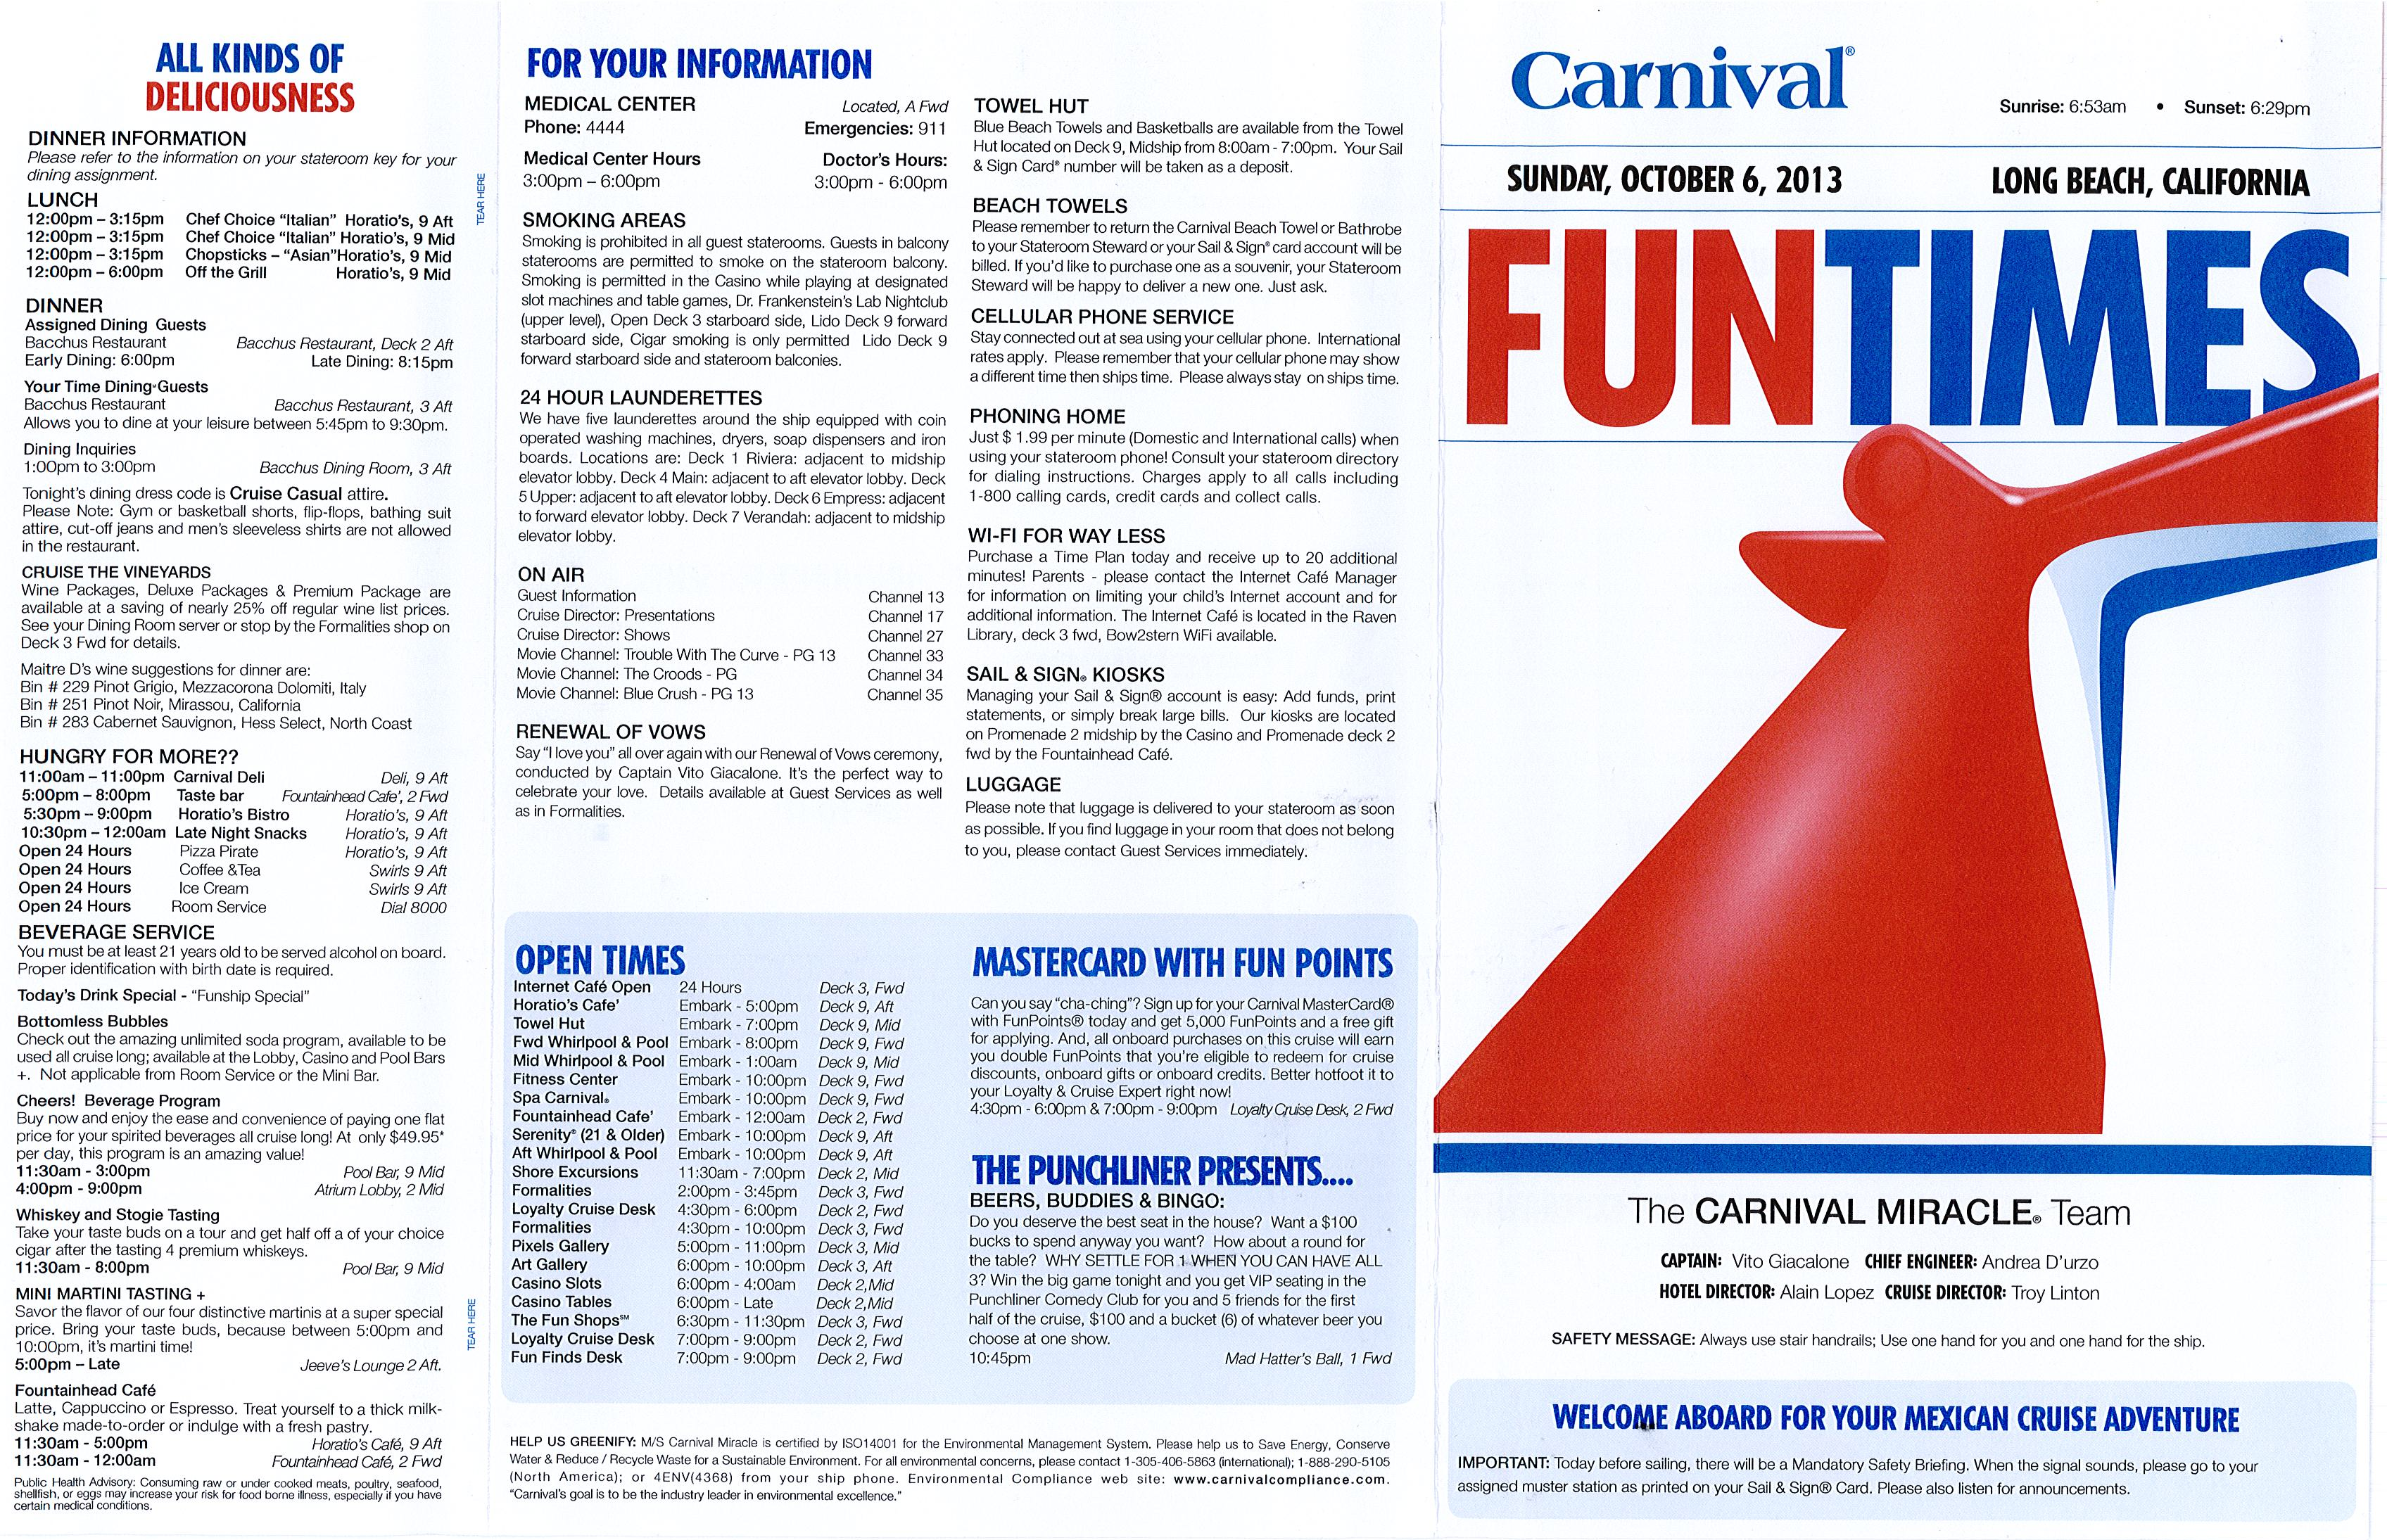 Fun Times  Mexican Riviera  Miracle Oct 3913  Cruise Critic Message Boa